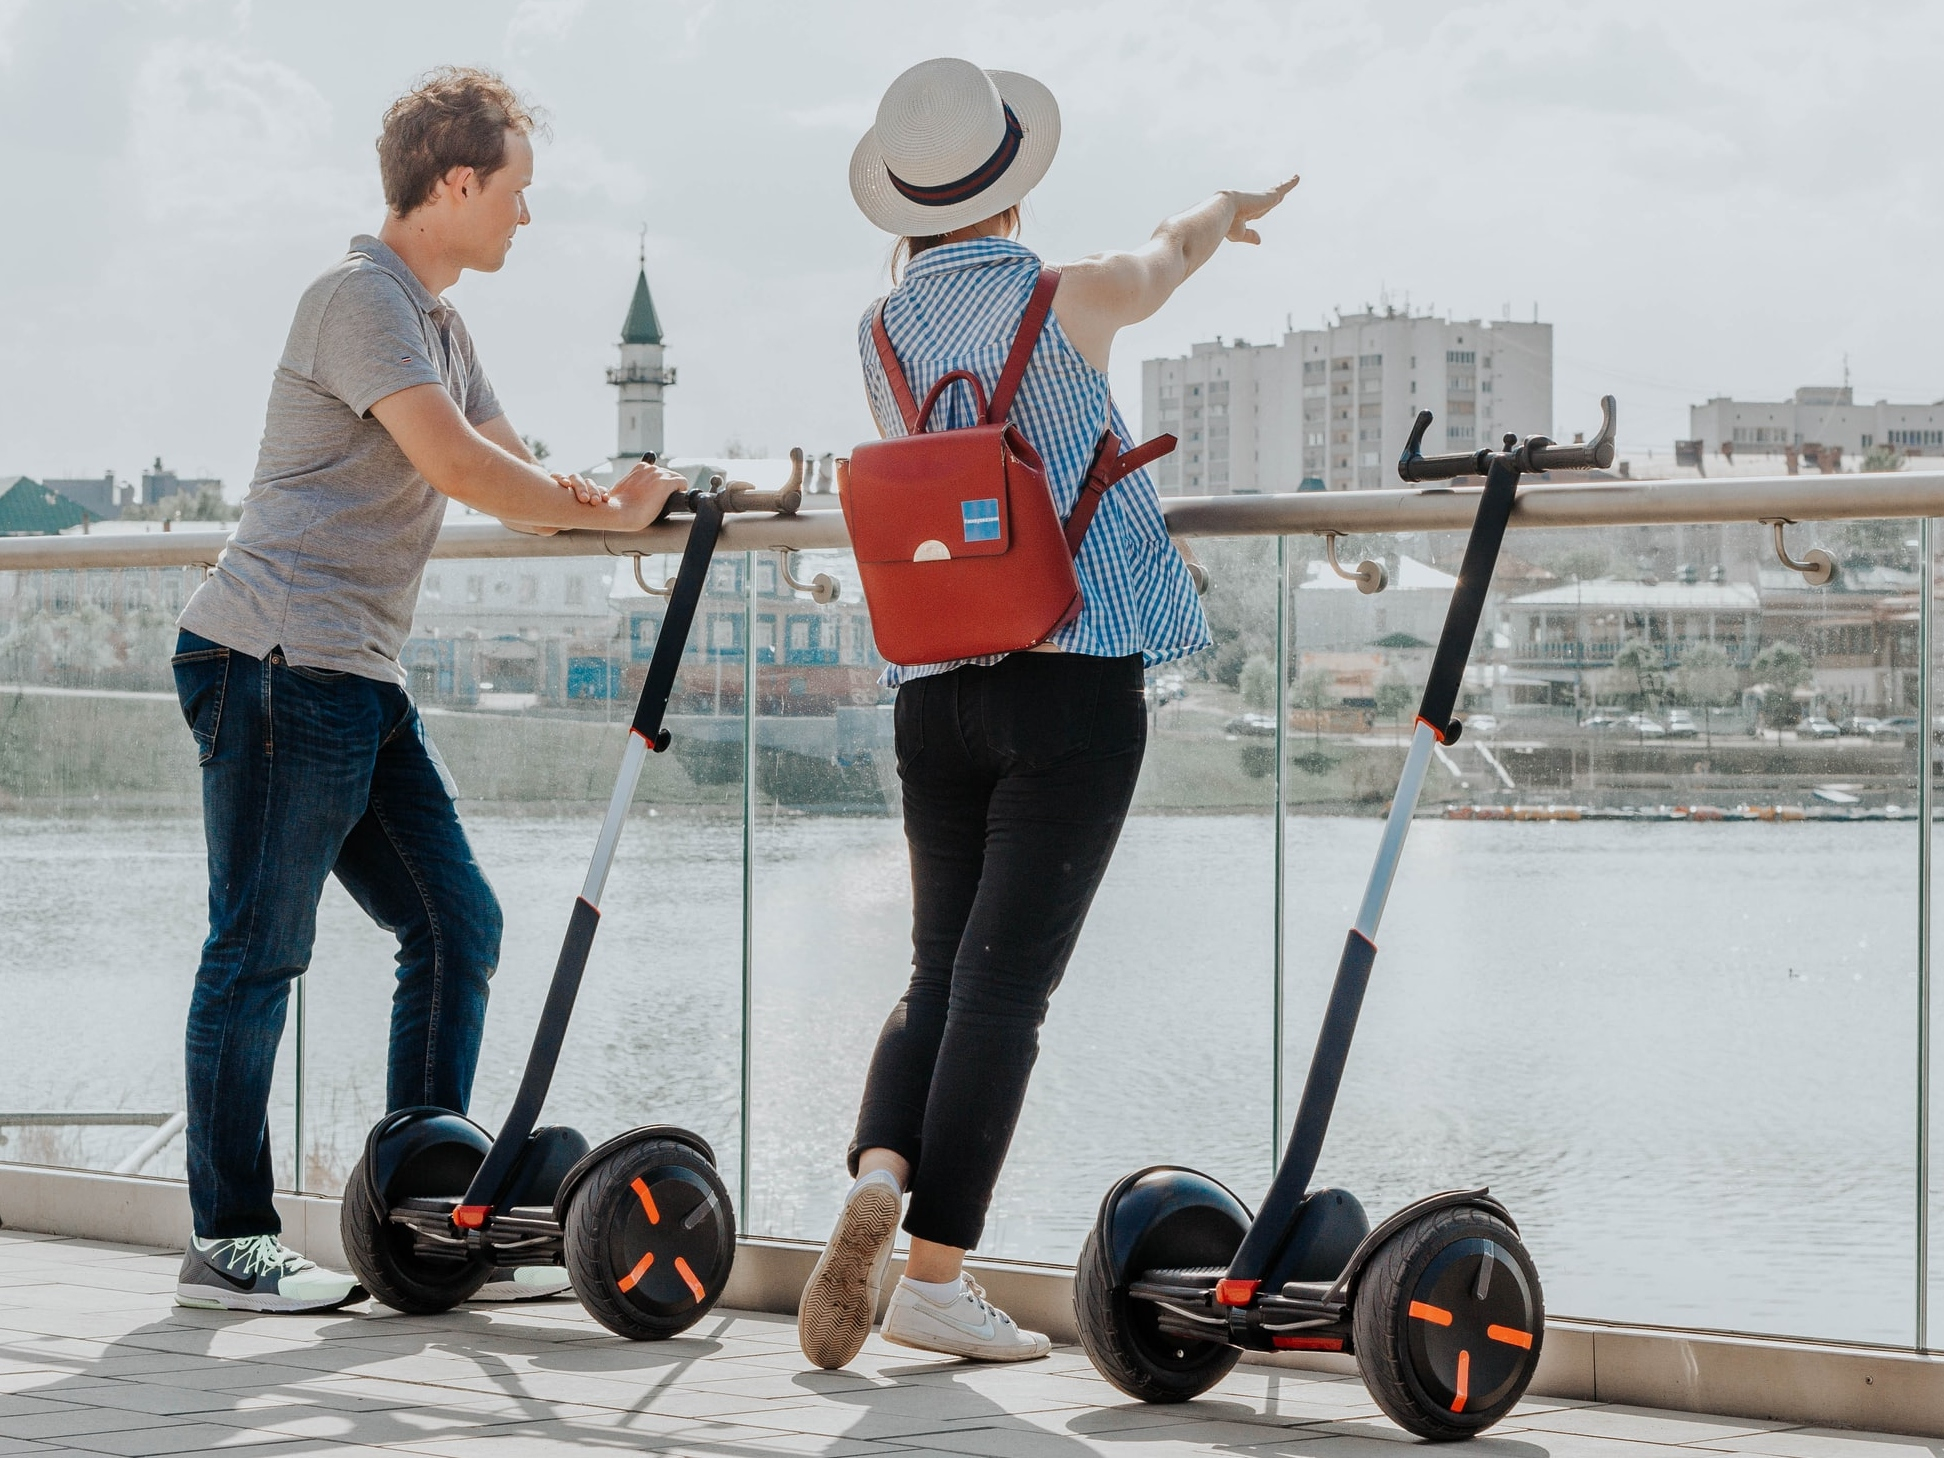 Segway-Ninebot Plans to Raise Over CNY 2 Billion Through Issuing CDRs in IPO